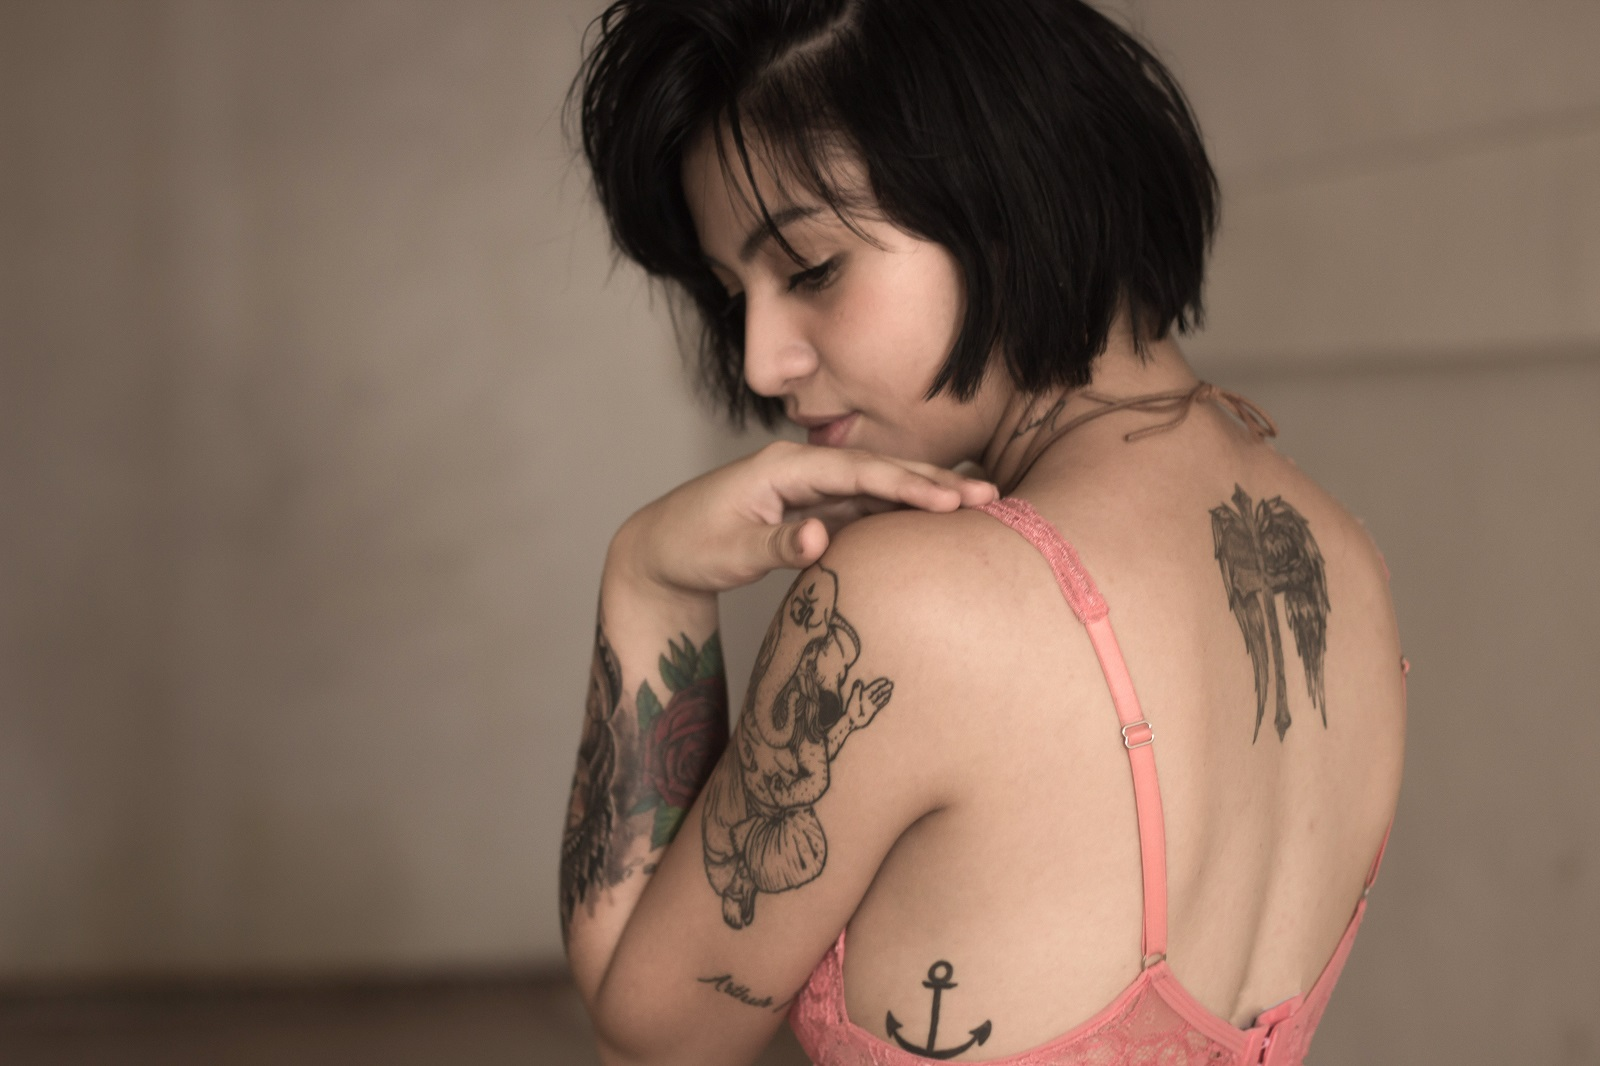 woman with tattoos in a bra